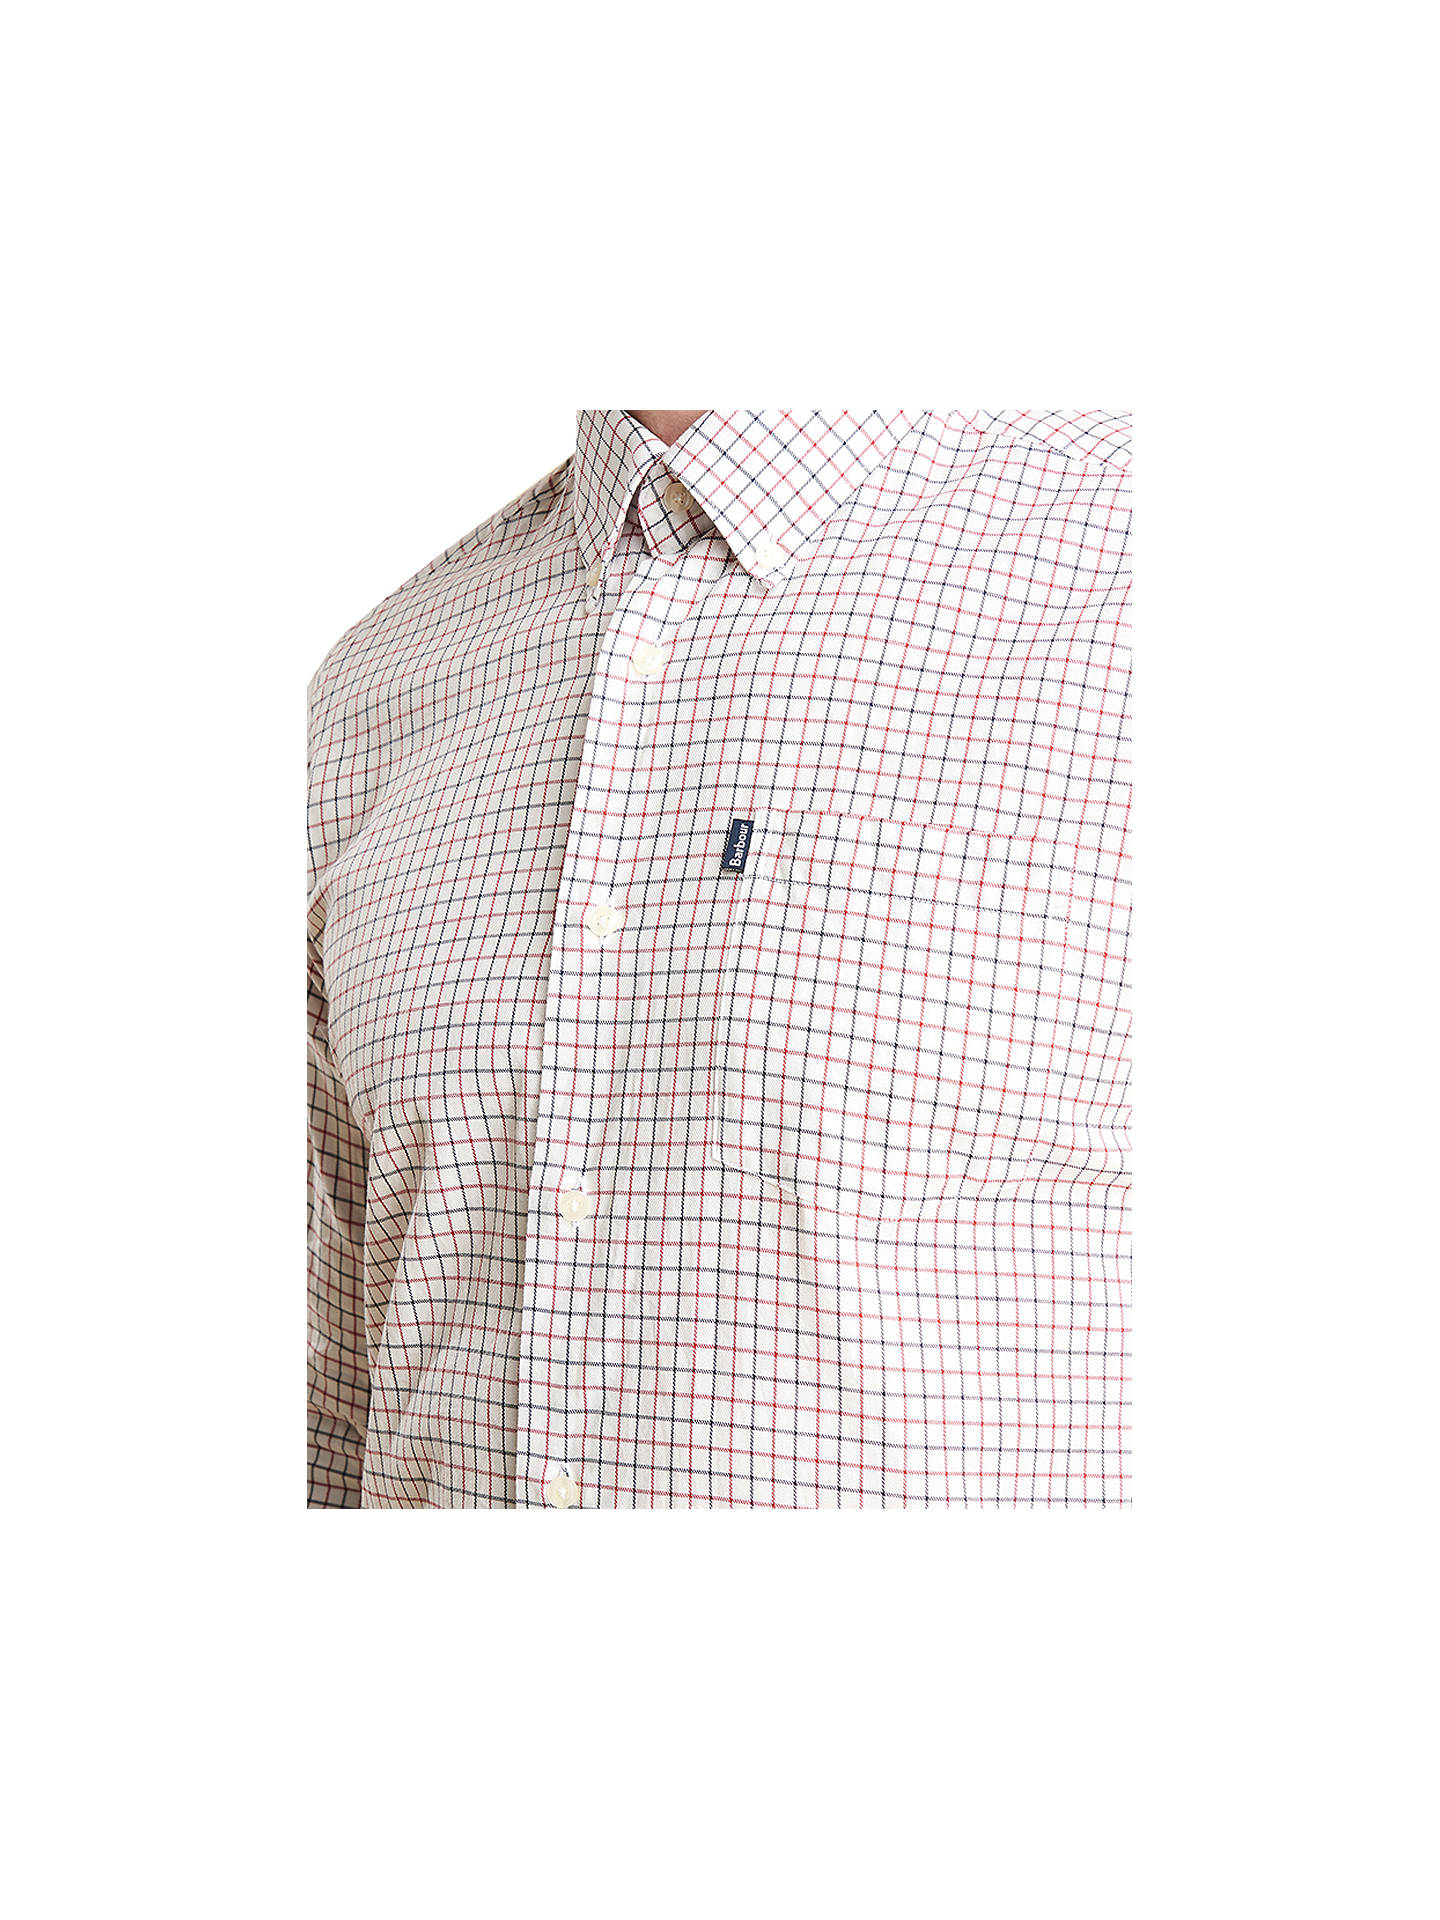 91d6869ac2a Buy Barbour Stapleton Tattersall Long Sleeve Check Shirt